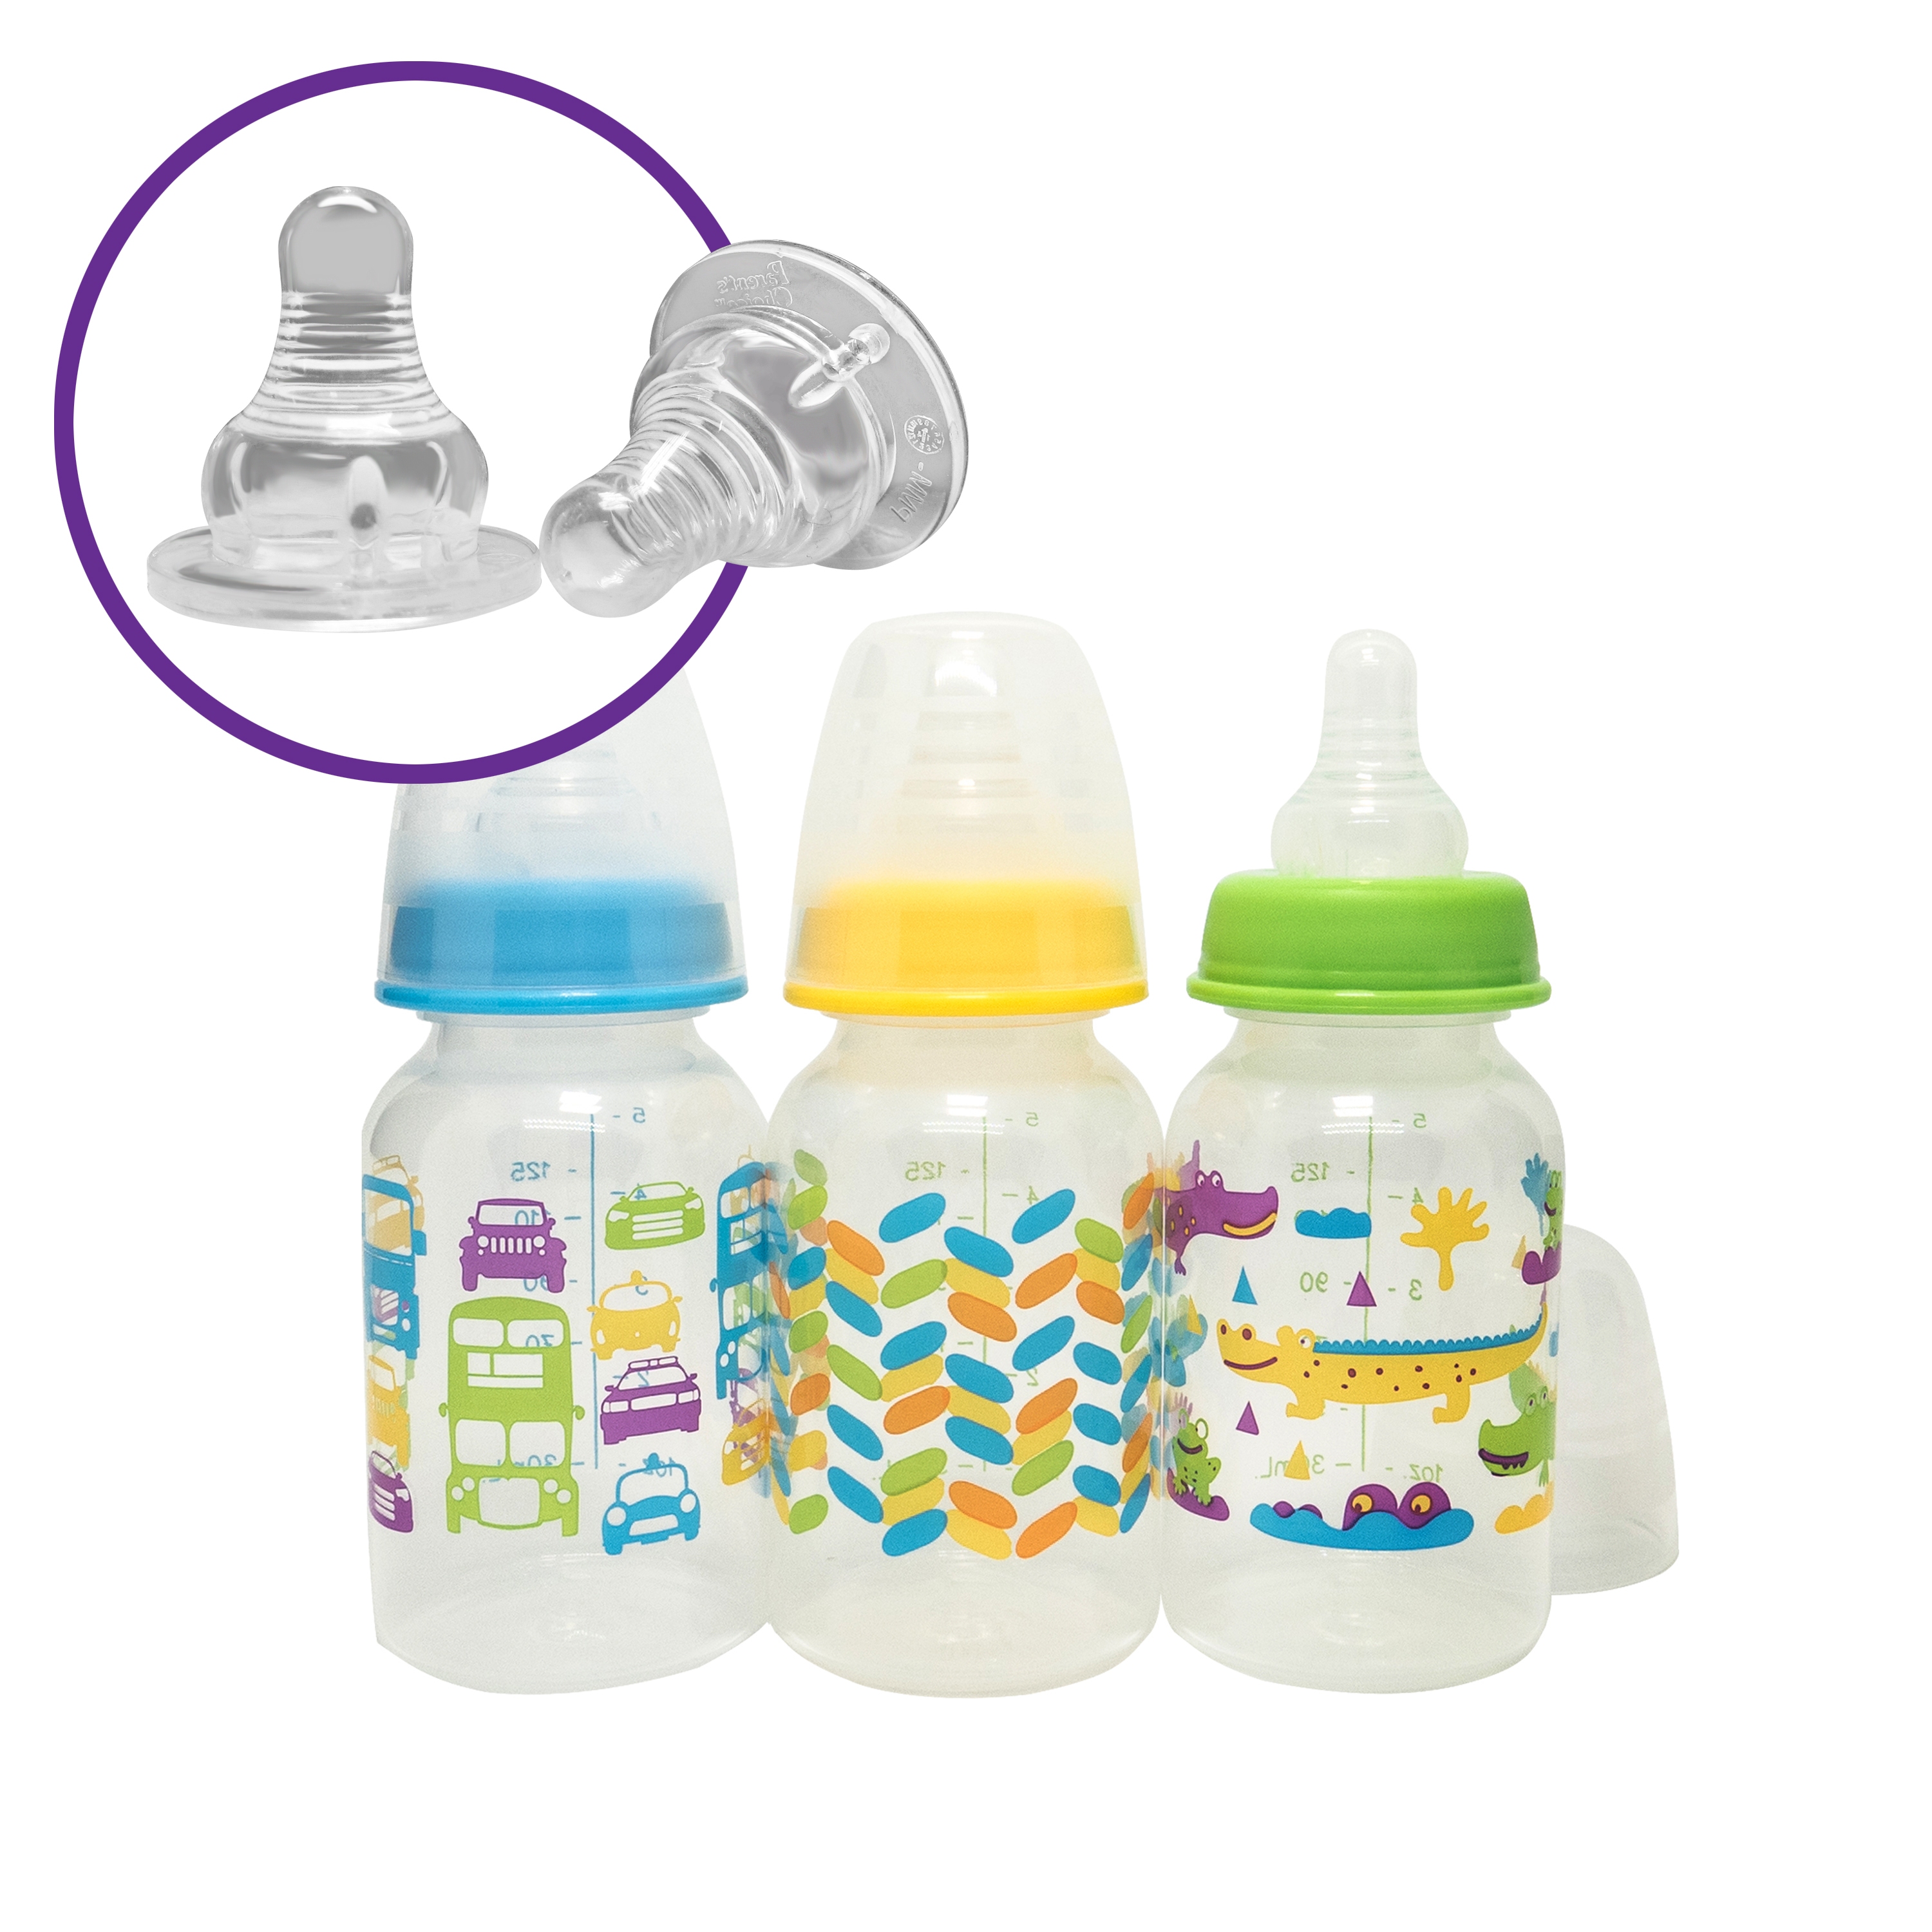 Parent's Choice BPA Free Bottles, 5 oz, 3 ct